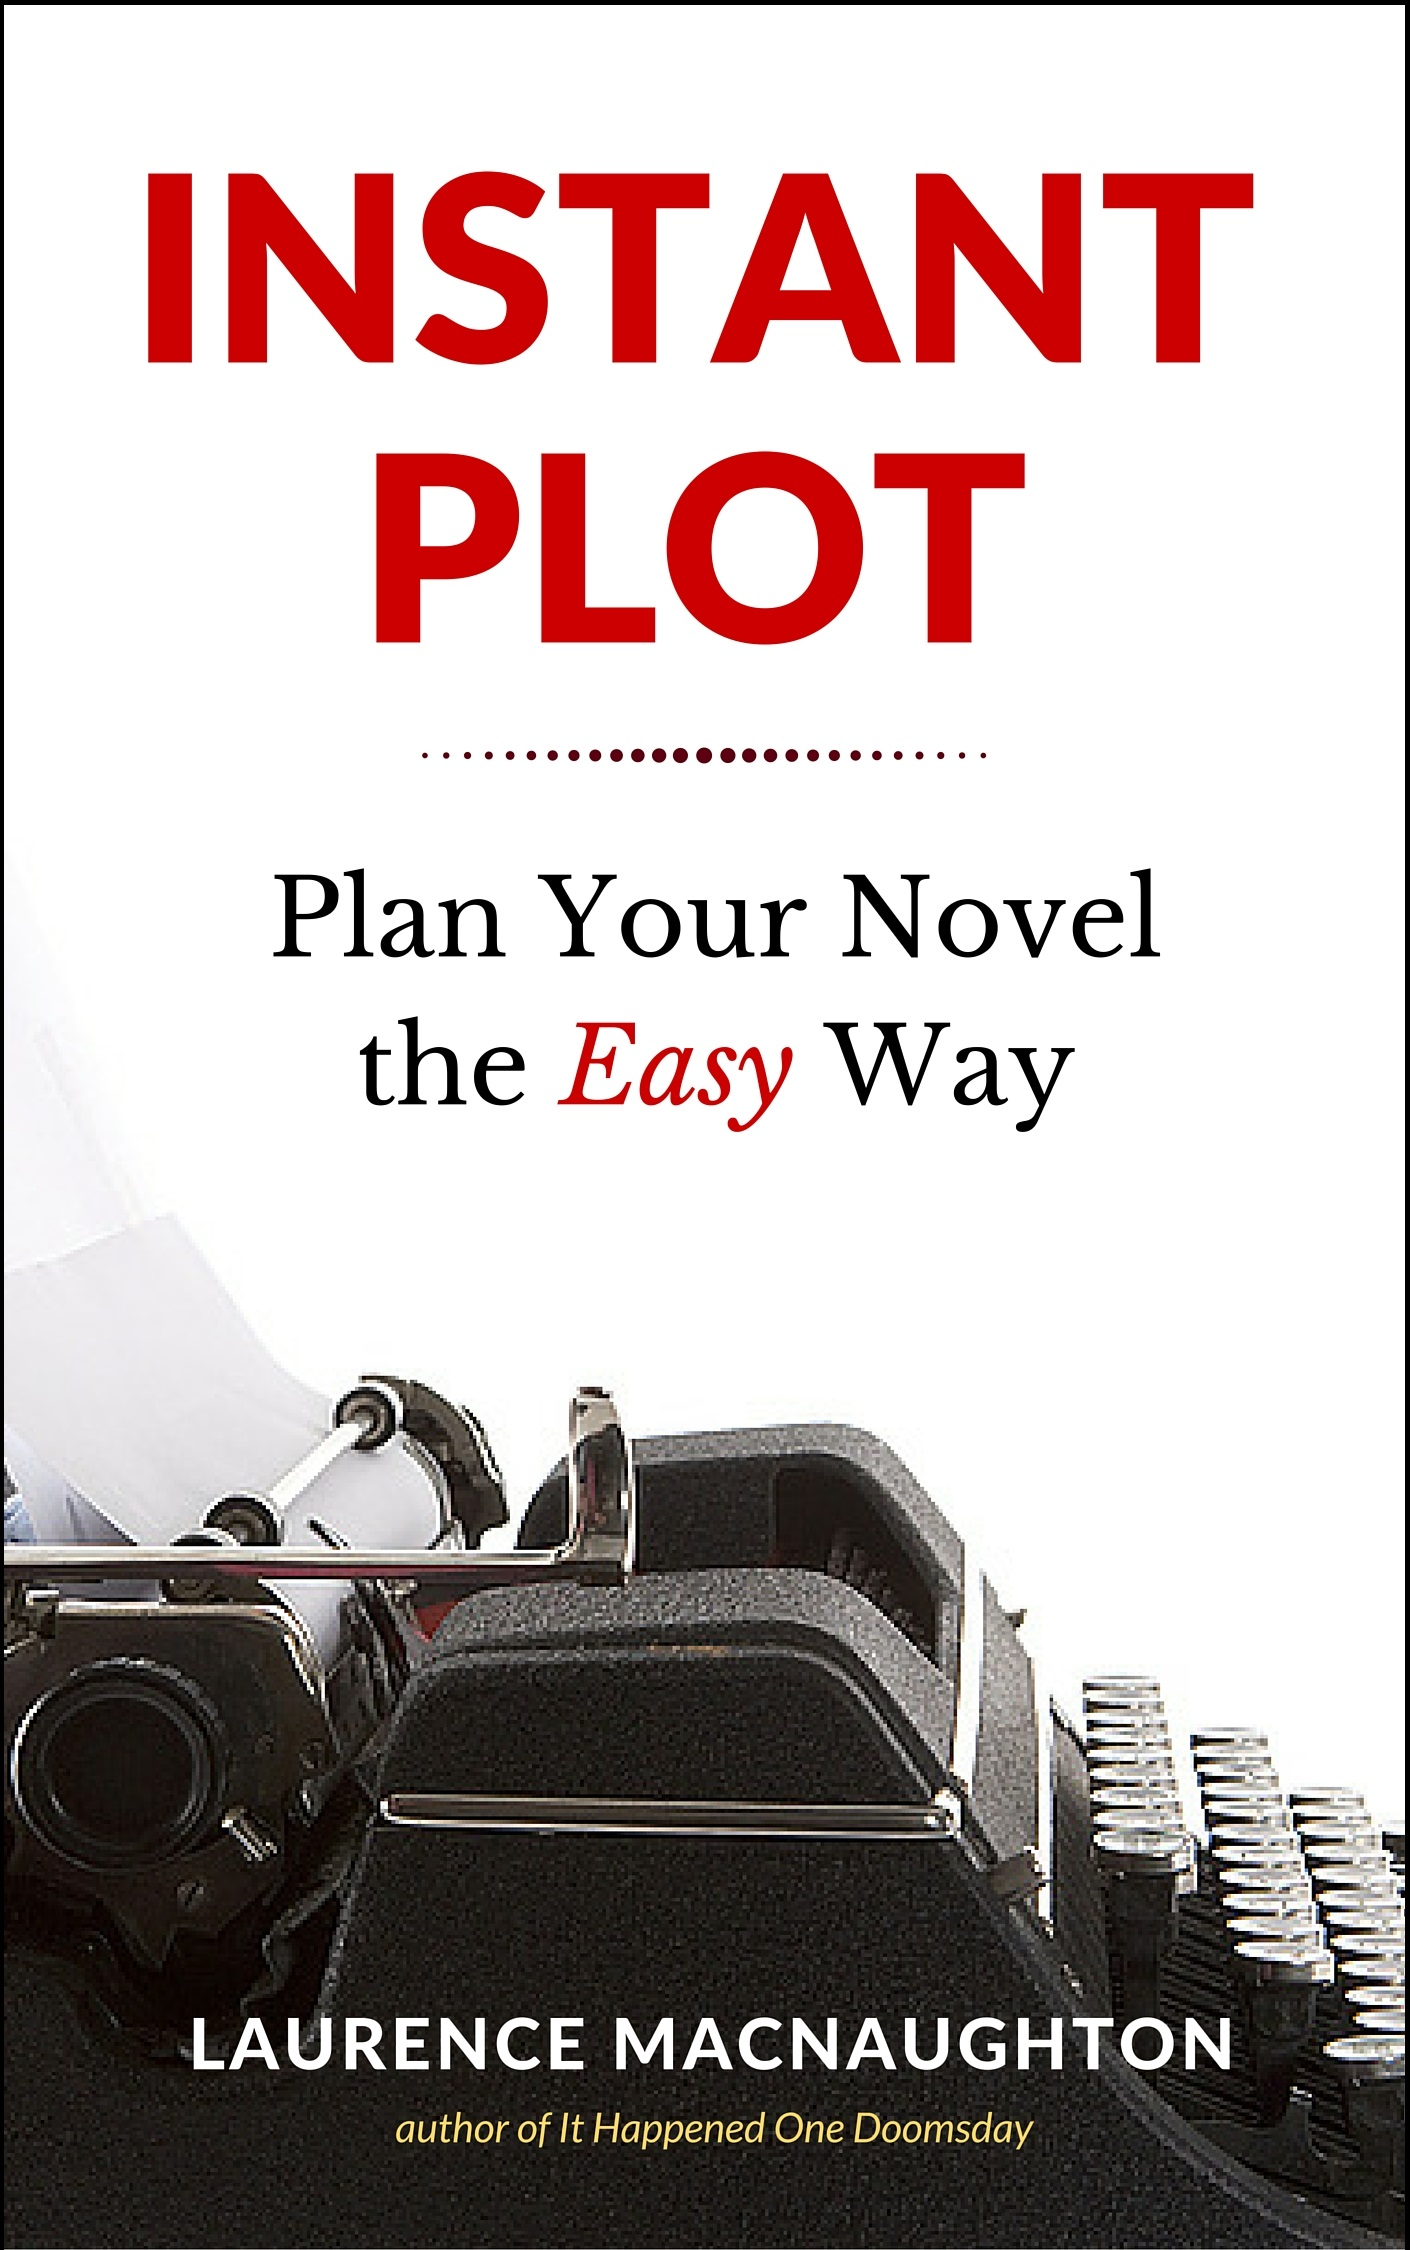 Which novel would be easiest to write about?